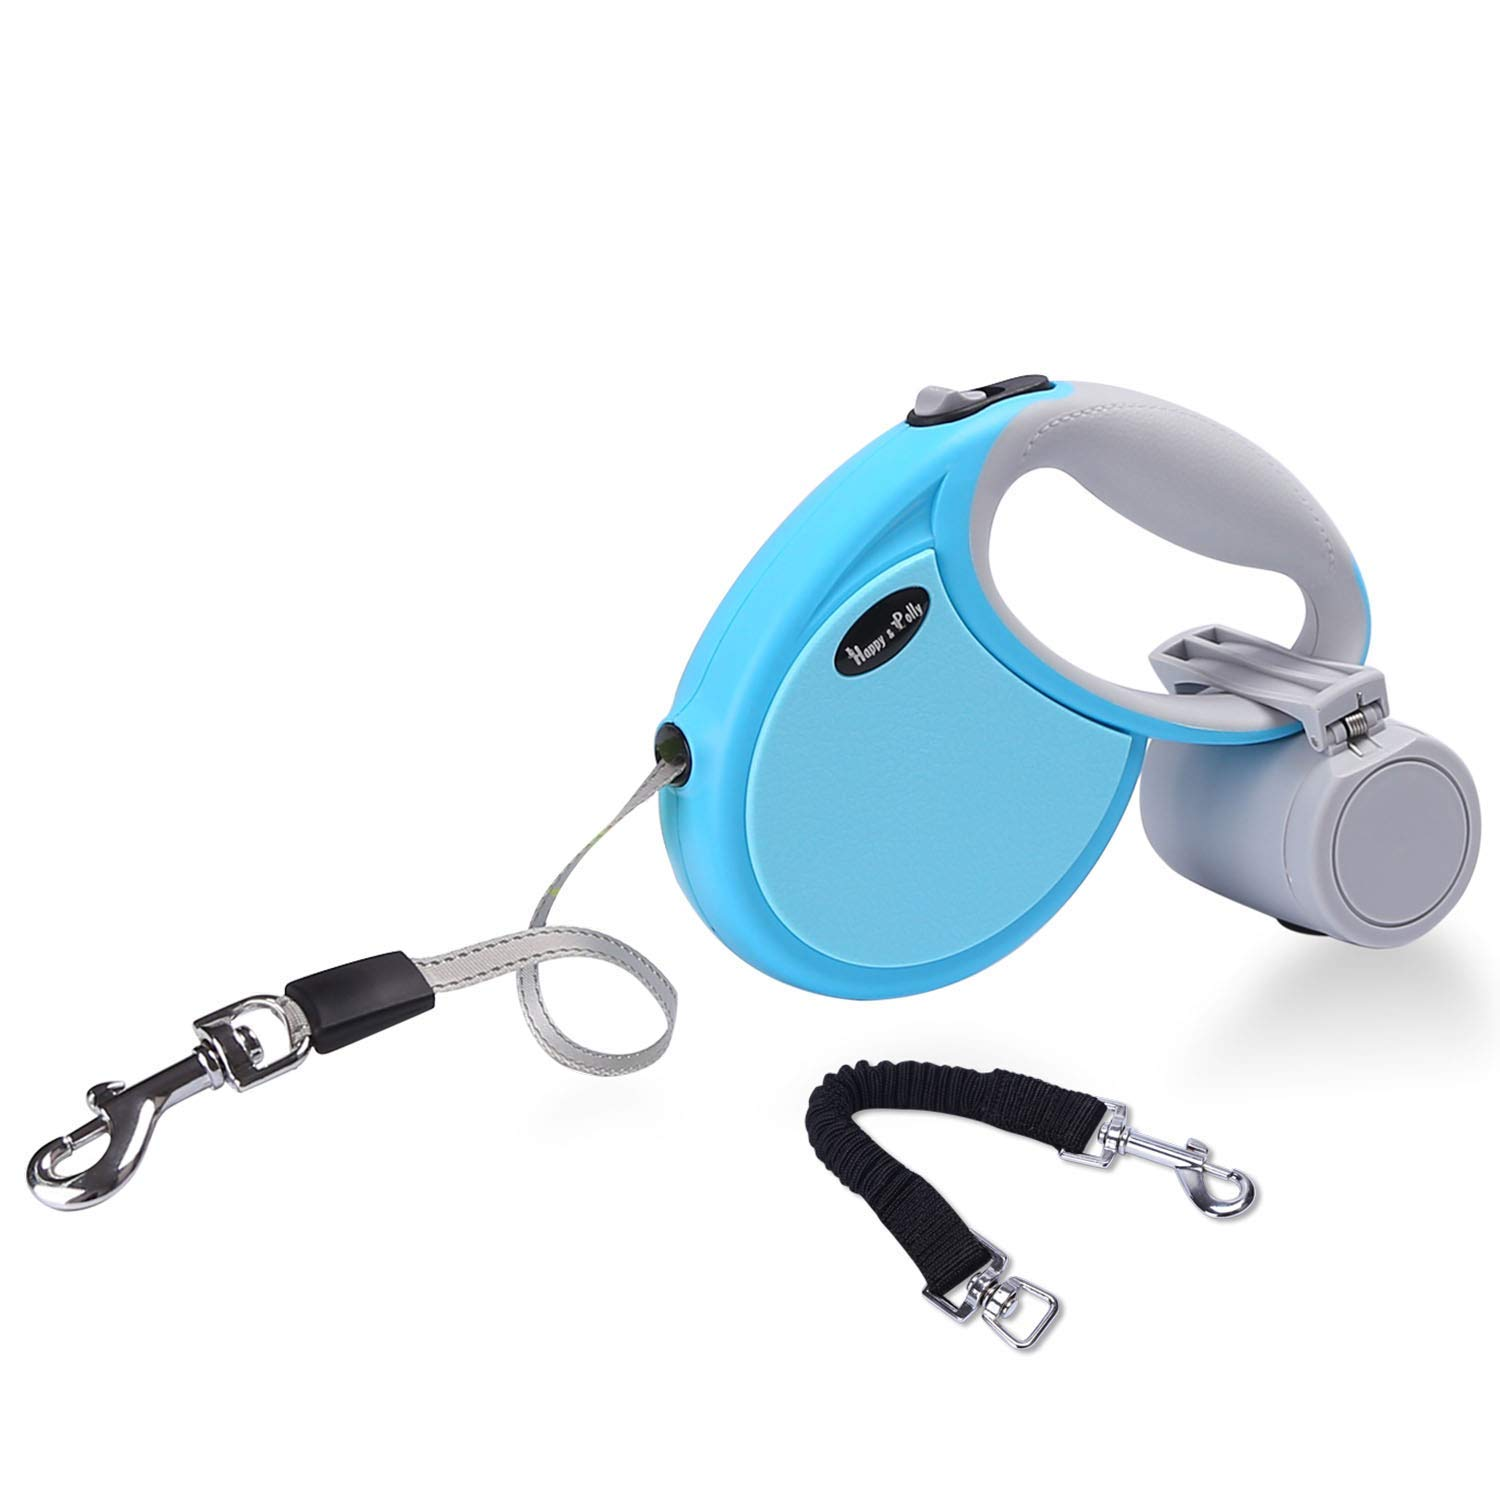 Happy & Polly Retractable Dog Leash 13.1ft Dog Belt Leash Anti-bite Dog Traction Rope Night Visible One-Hand Release Brake with Anti-Slip Handle, Anti-Pull Bungee Leash for Small Medium Dogs by Happy & Polly